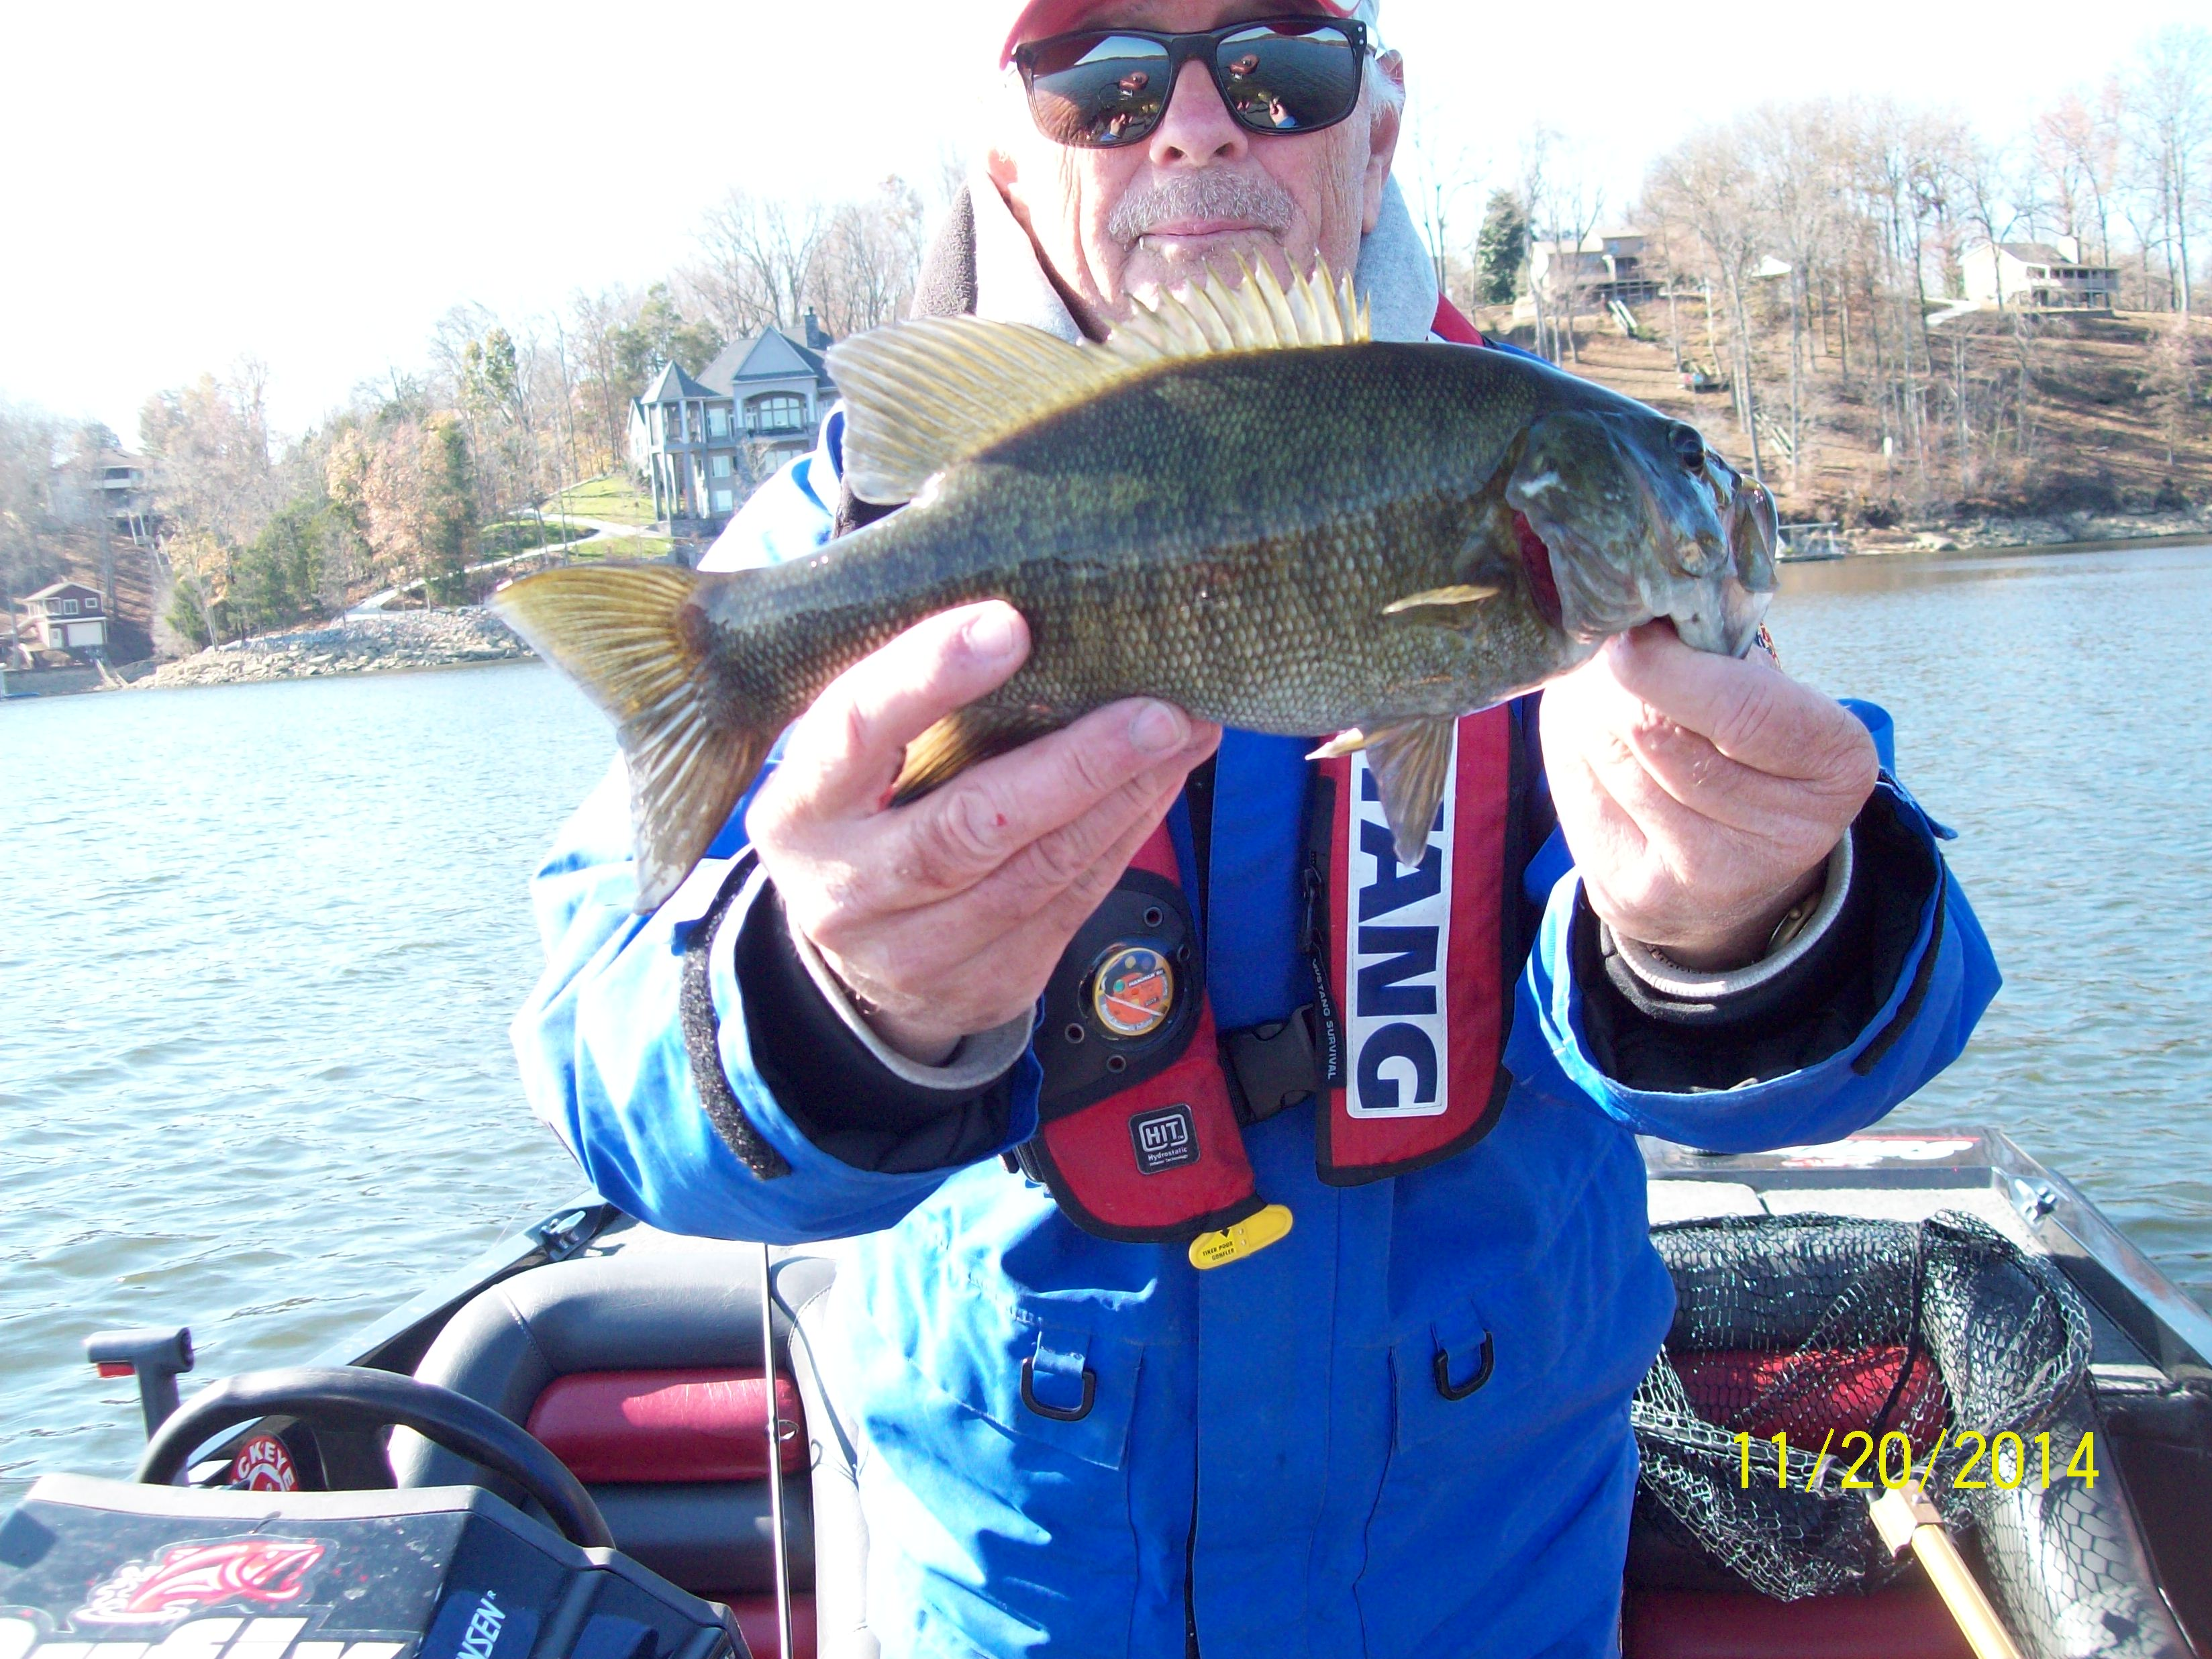 Tims ford live bait 11 20 2014 tennessee bass guides for Bass fishing with live bait